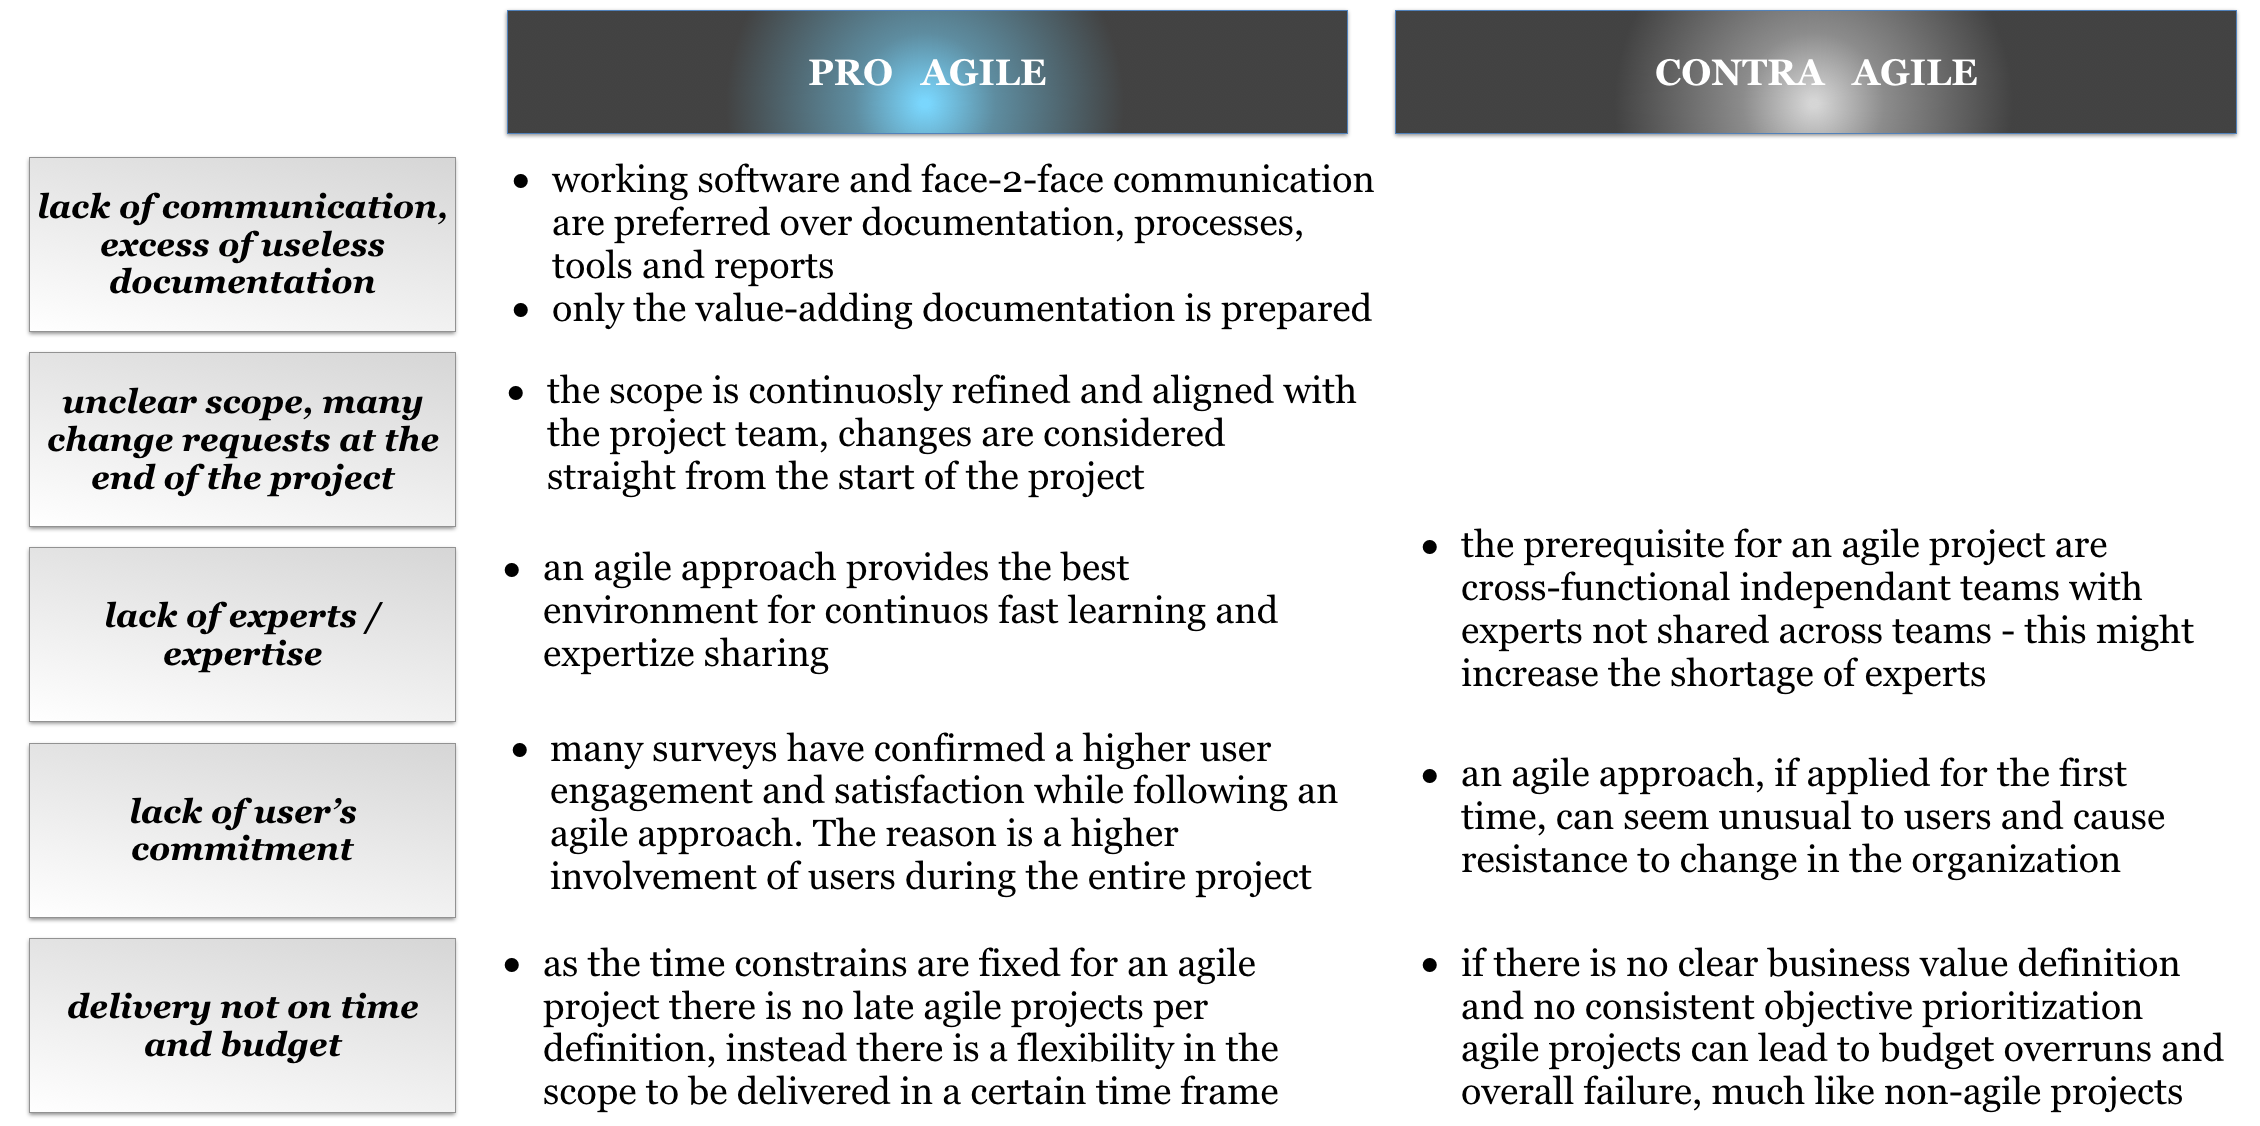 Pro's and con's of an agile approach in the context of SAP projects_Agilon GmbH